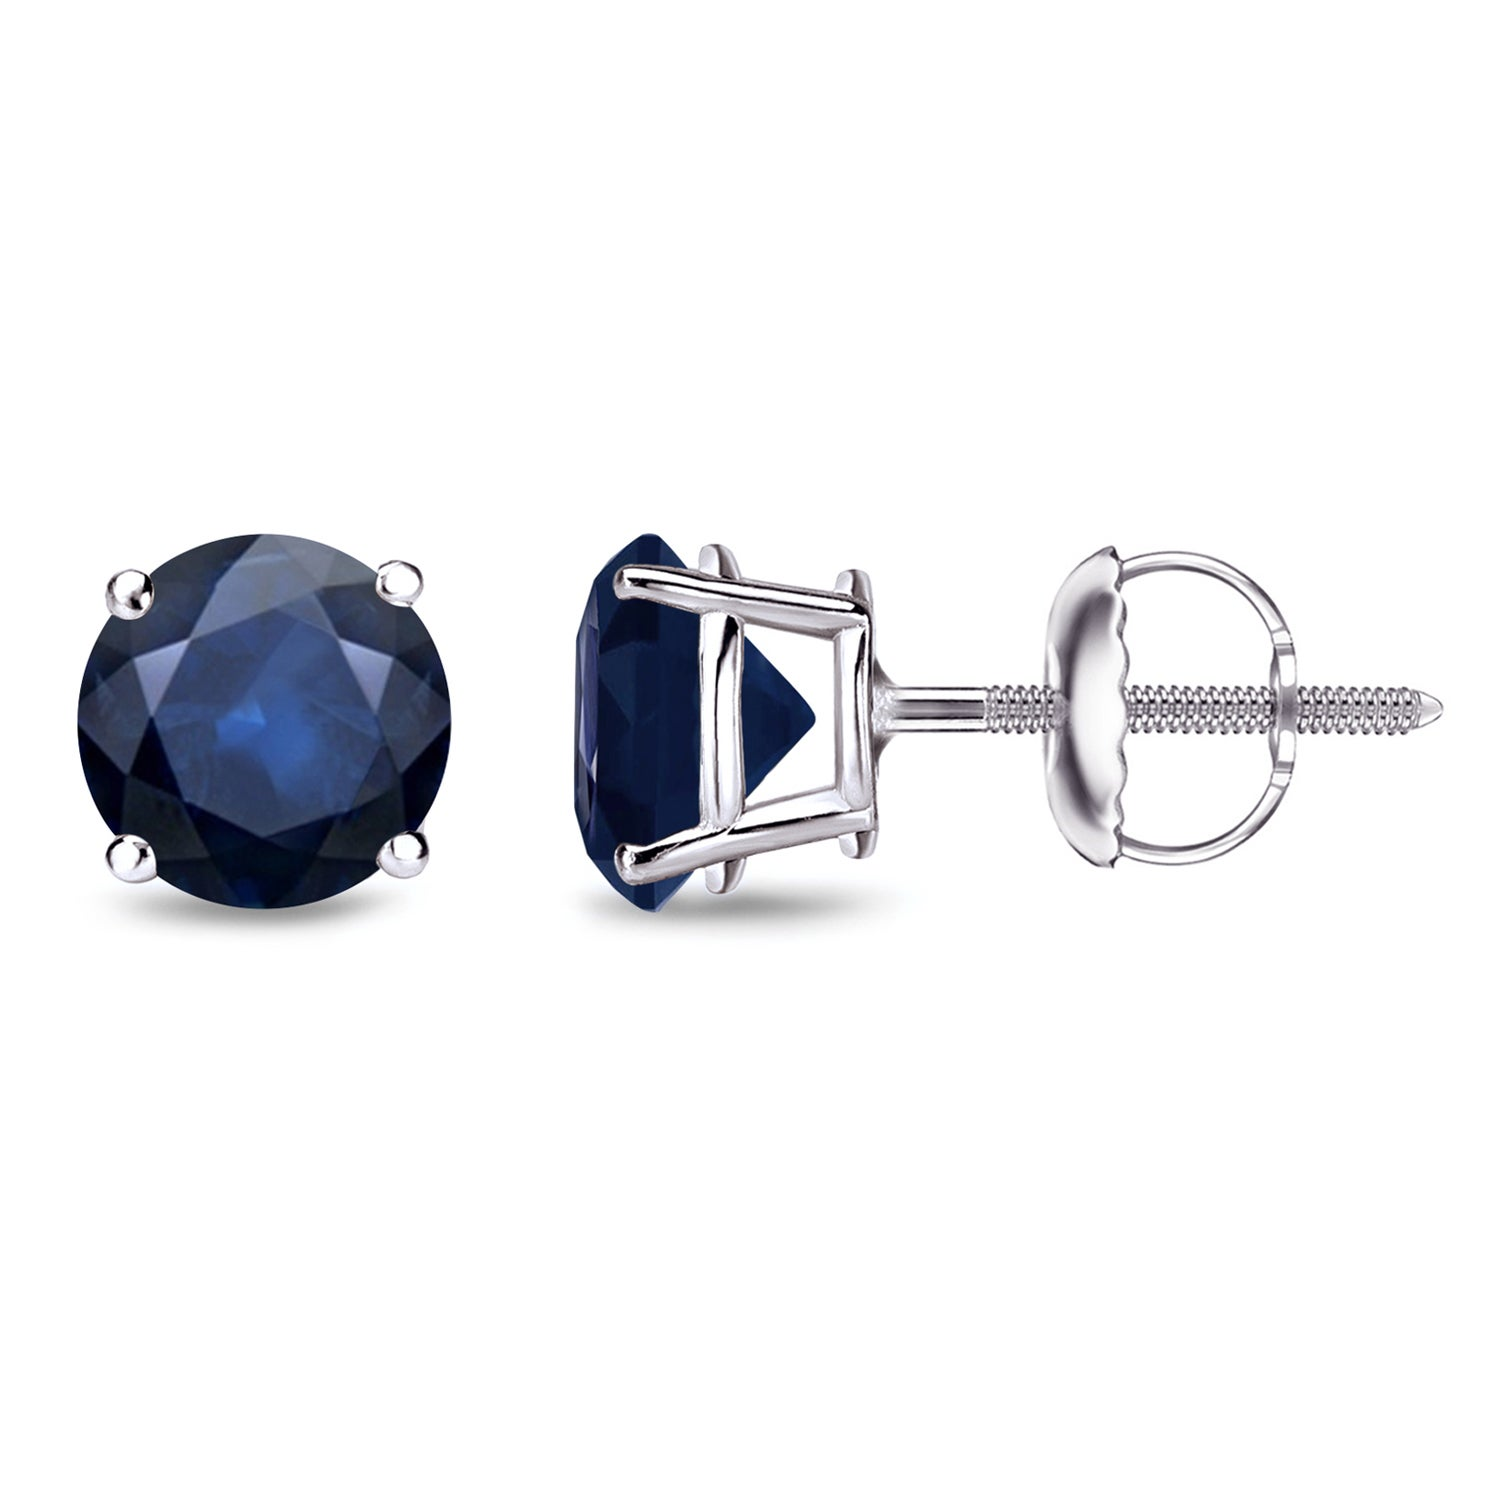 Shop Auriya 14k Gold 1 1 2ct TW Round Sapphire Stud Earrings